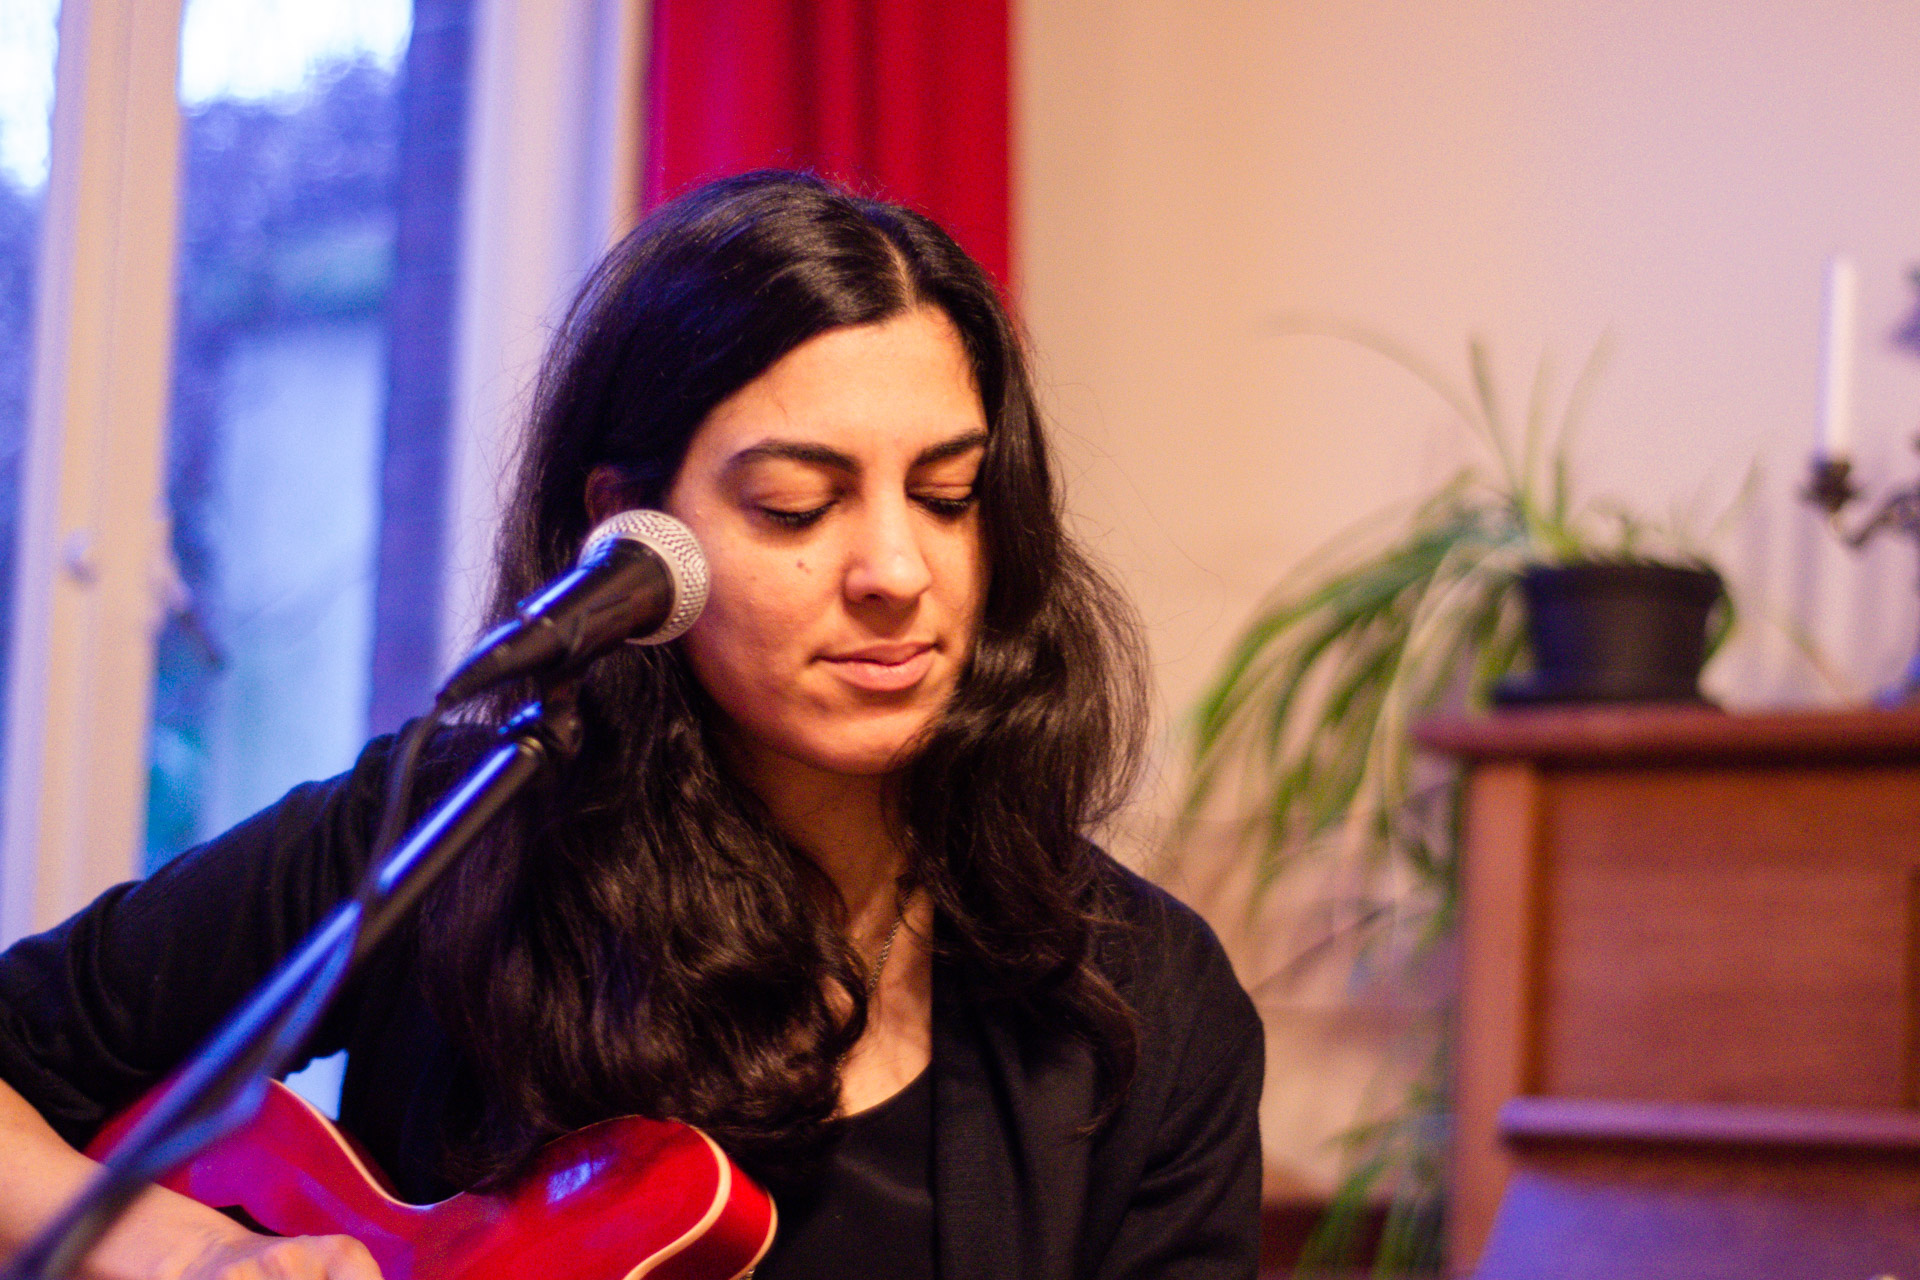 Nadine Khouri (Photo by Matthijs van der Ven for The Influences)